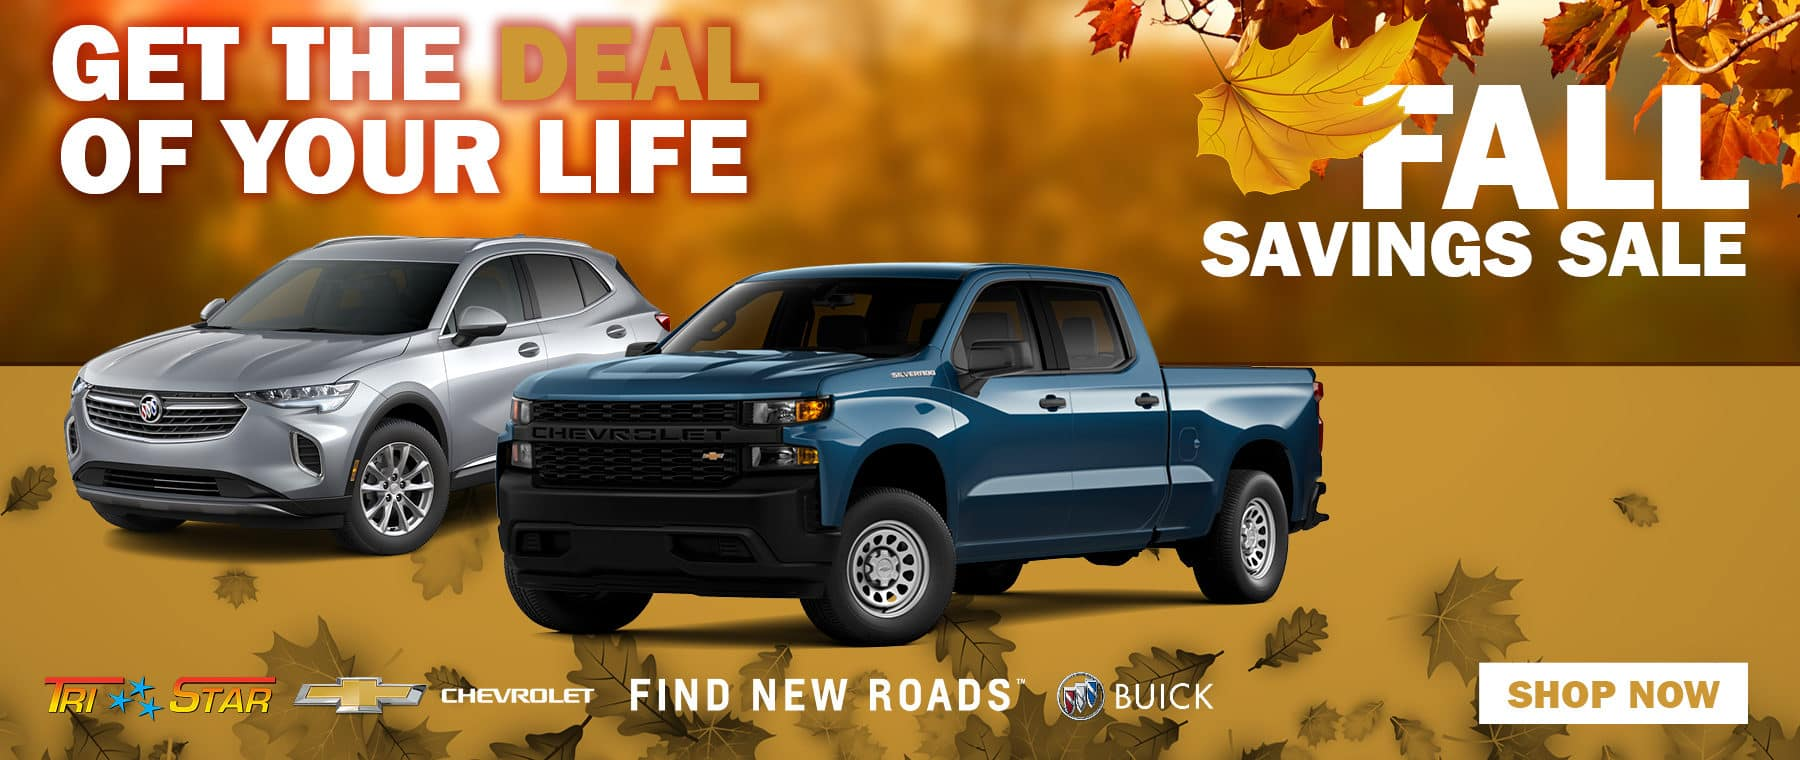 Fall Savings Sale on New Inventory